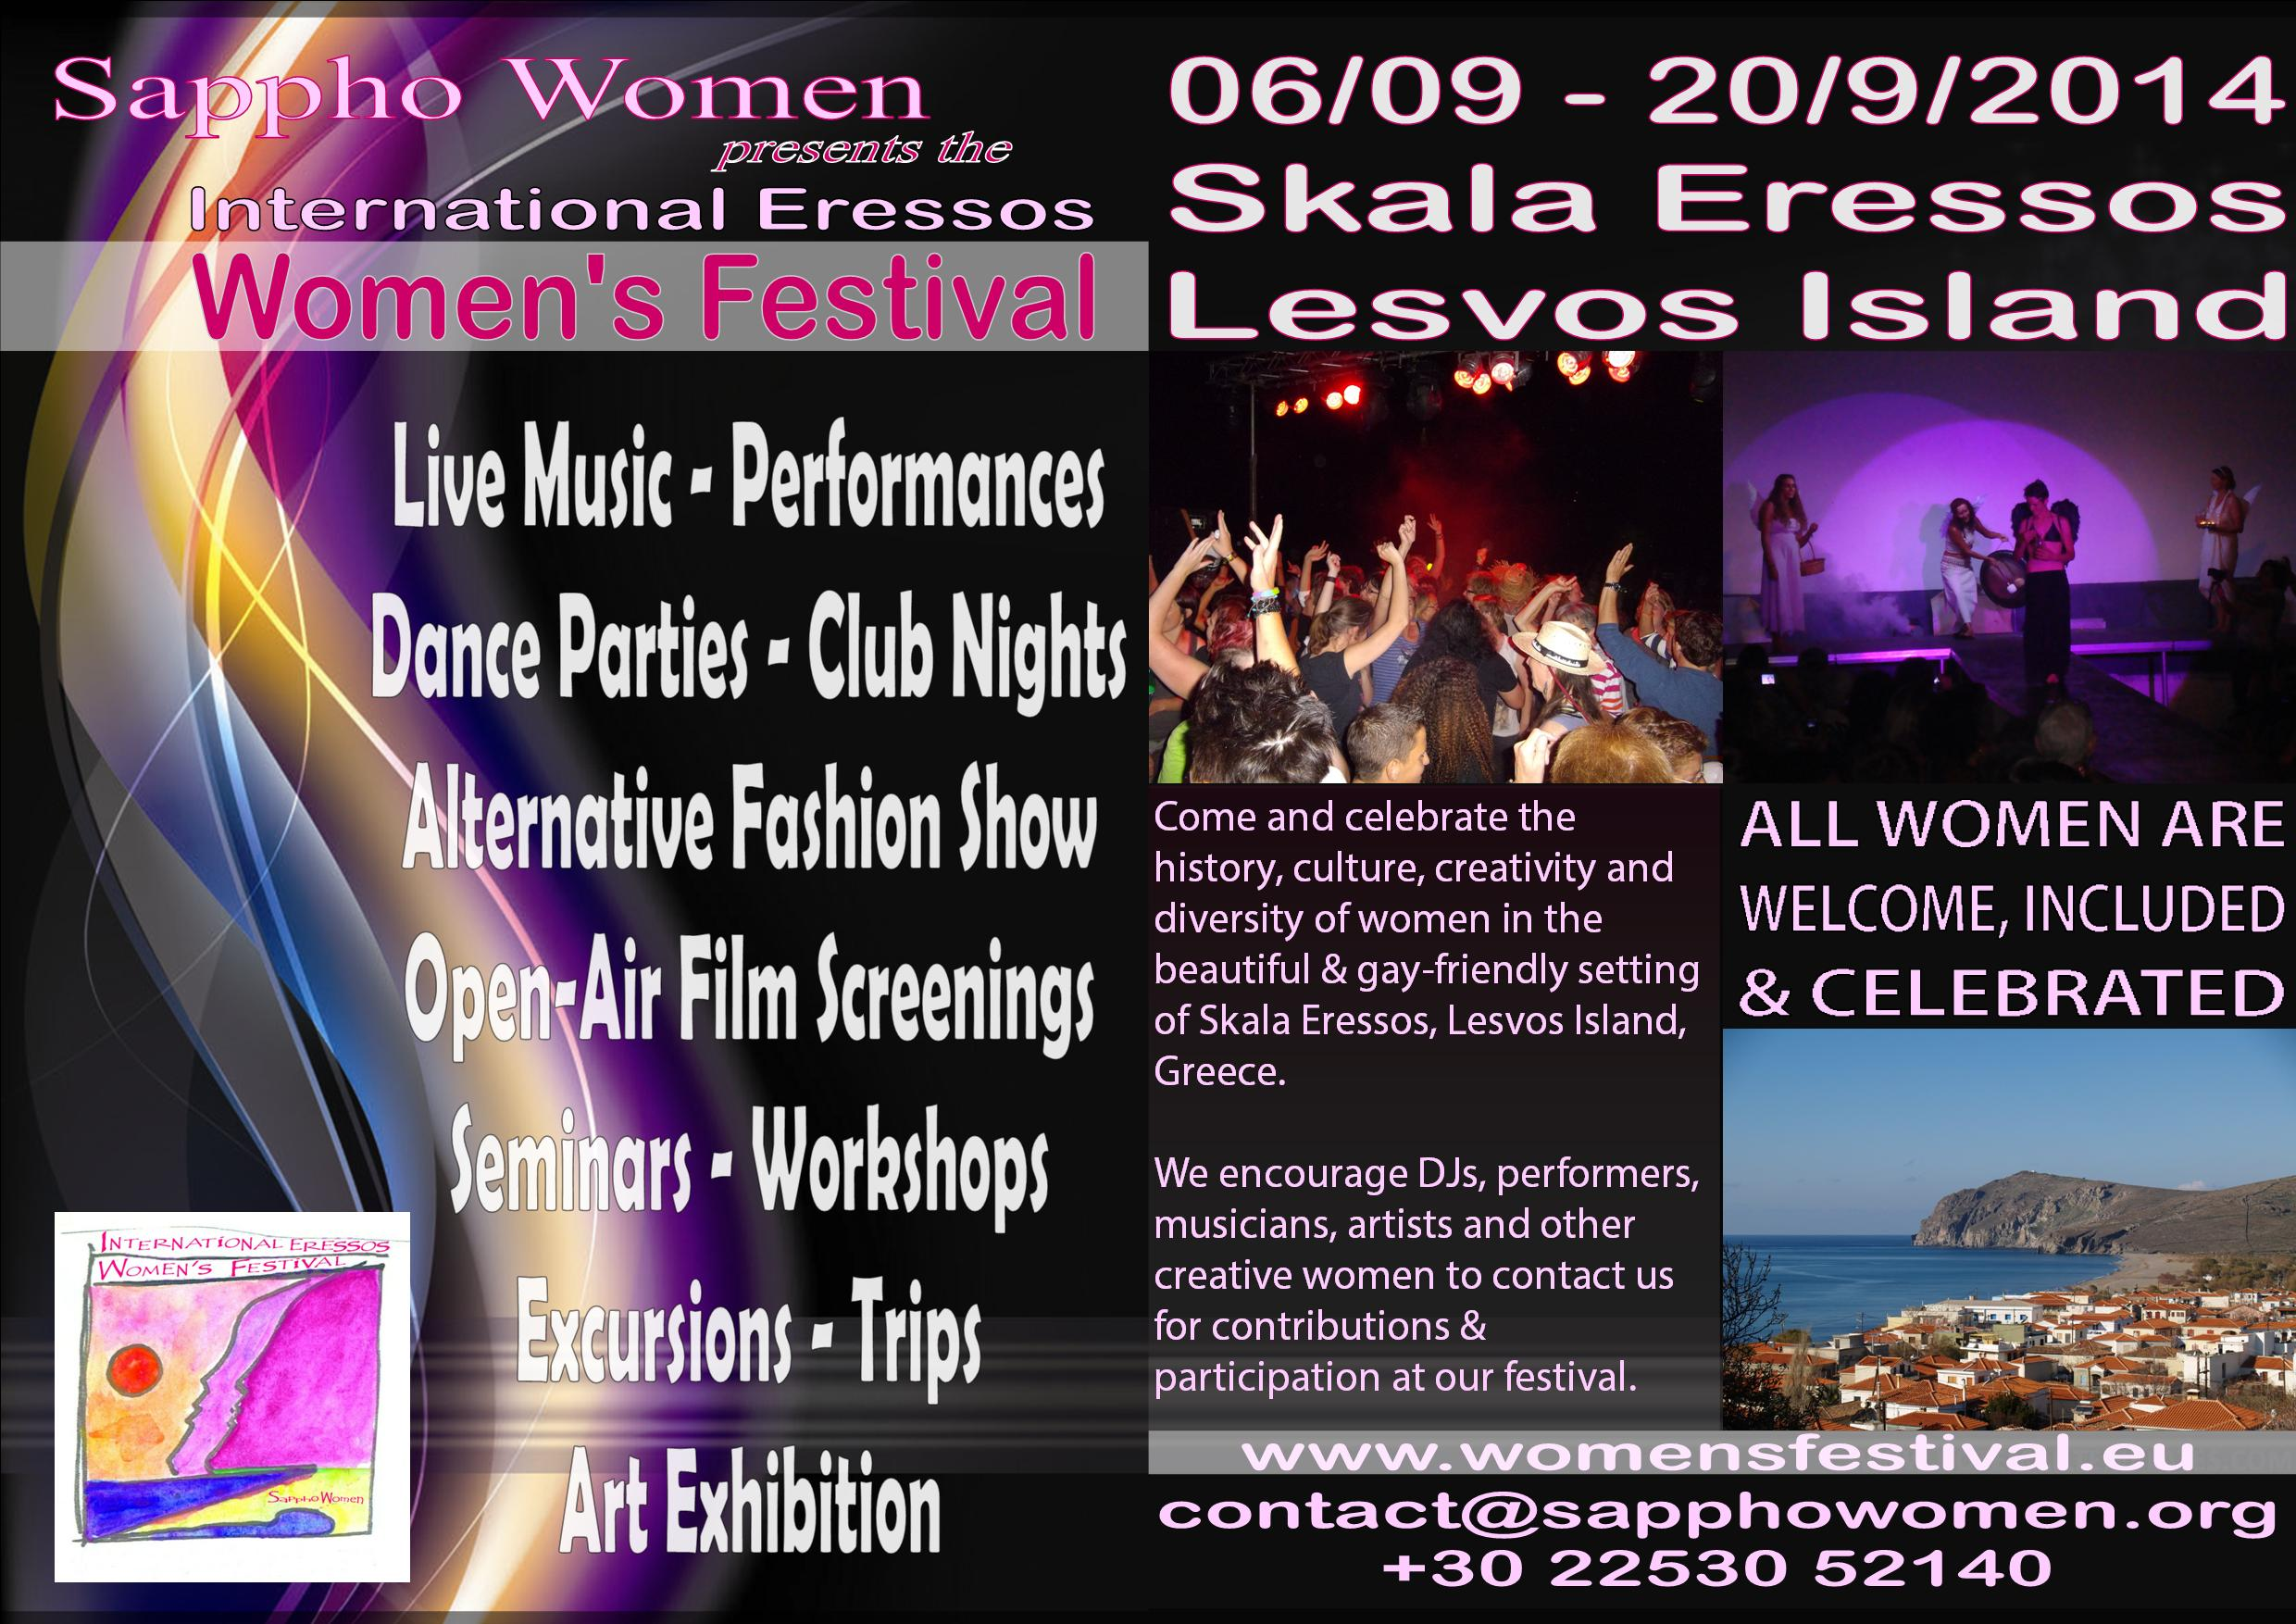 International Eressos Women's Festival